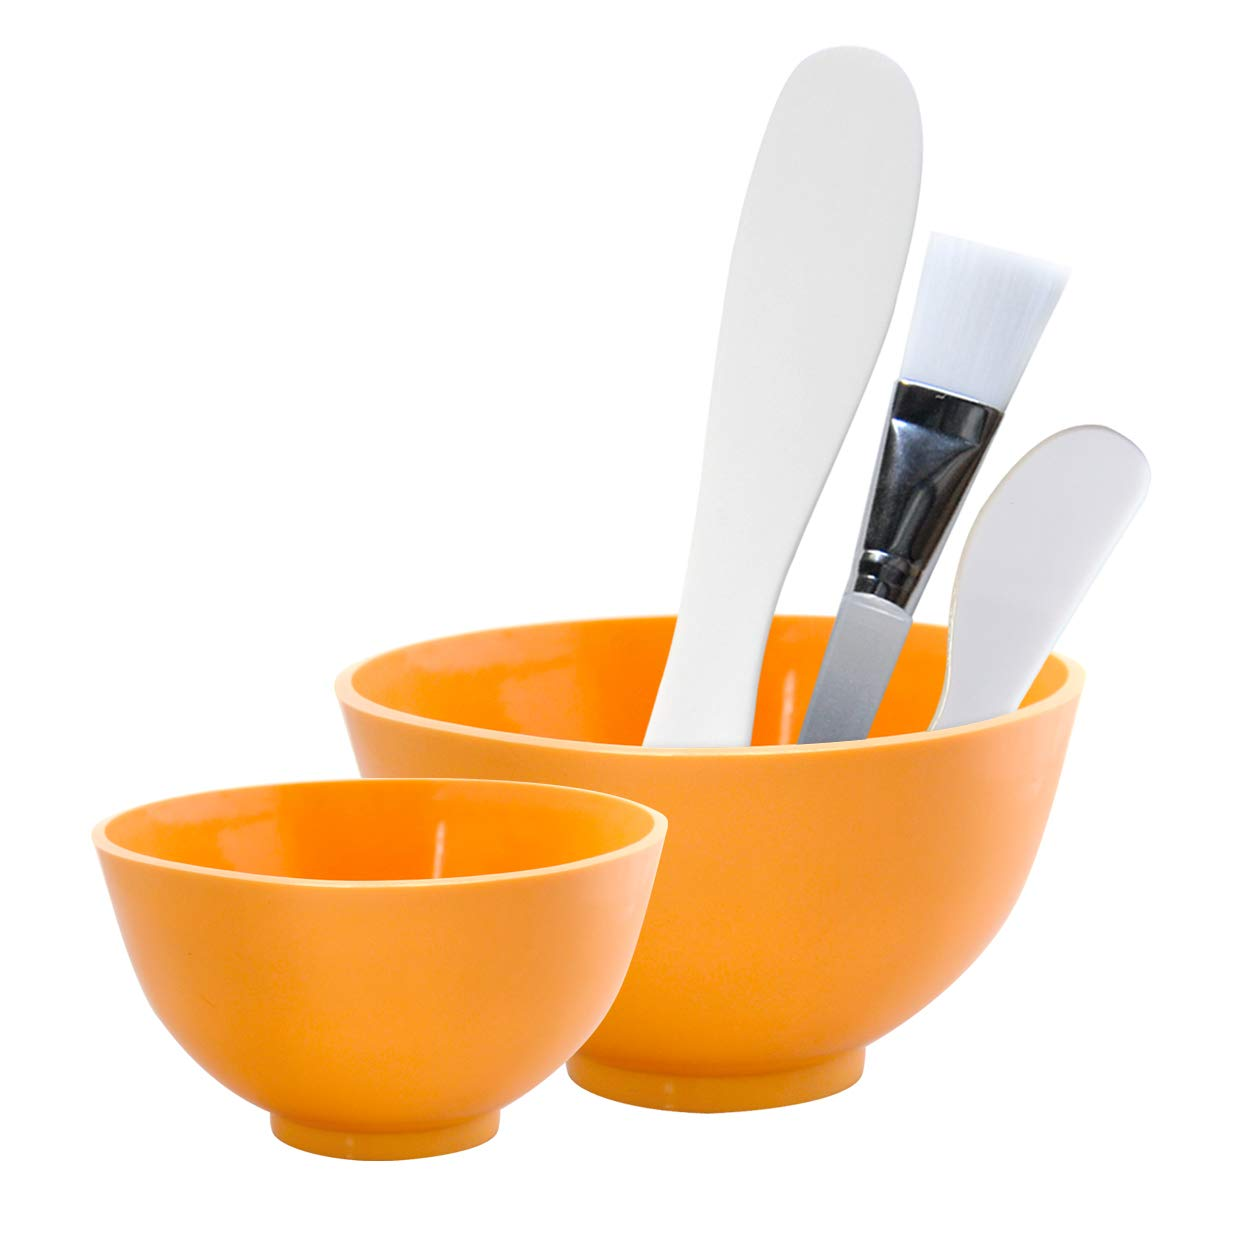 Appearus Facial Mask Rubber Mixing Bowl Set - Spa Face Mask Mixing Tool (Pumpkin Orange) by Appearus